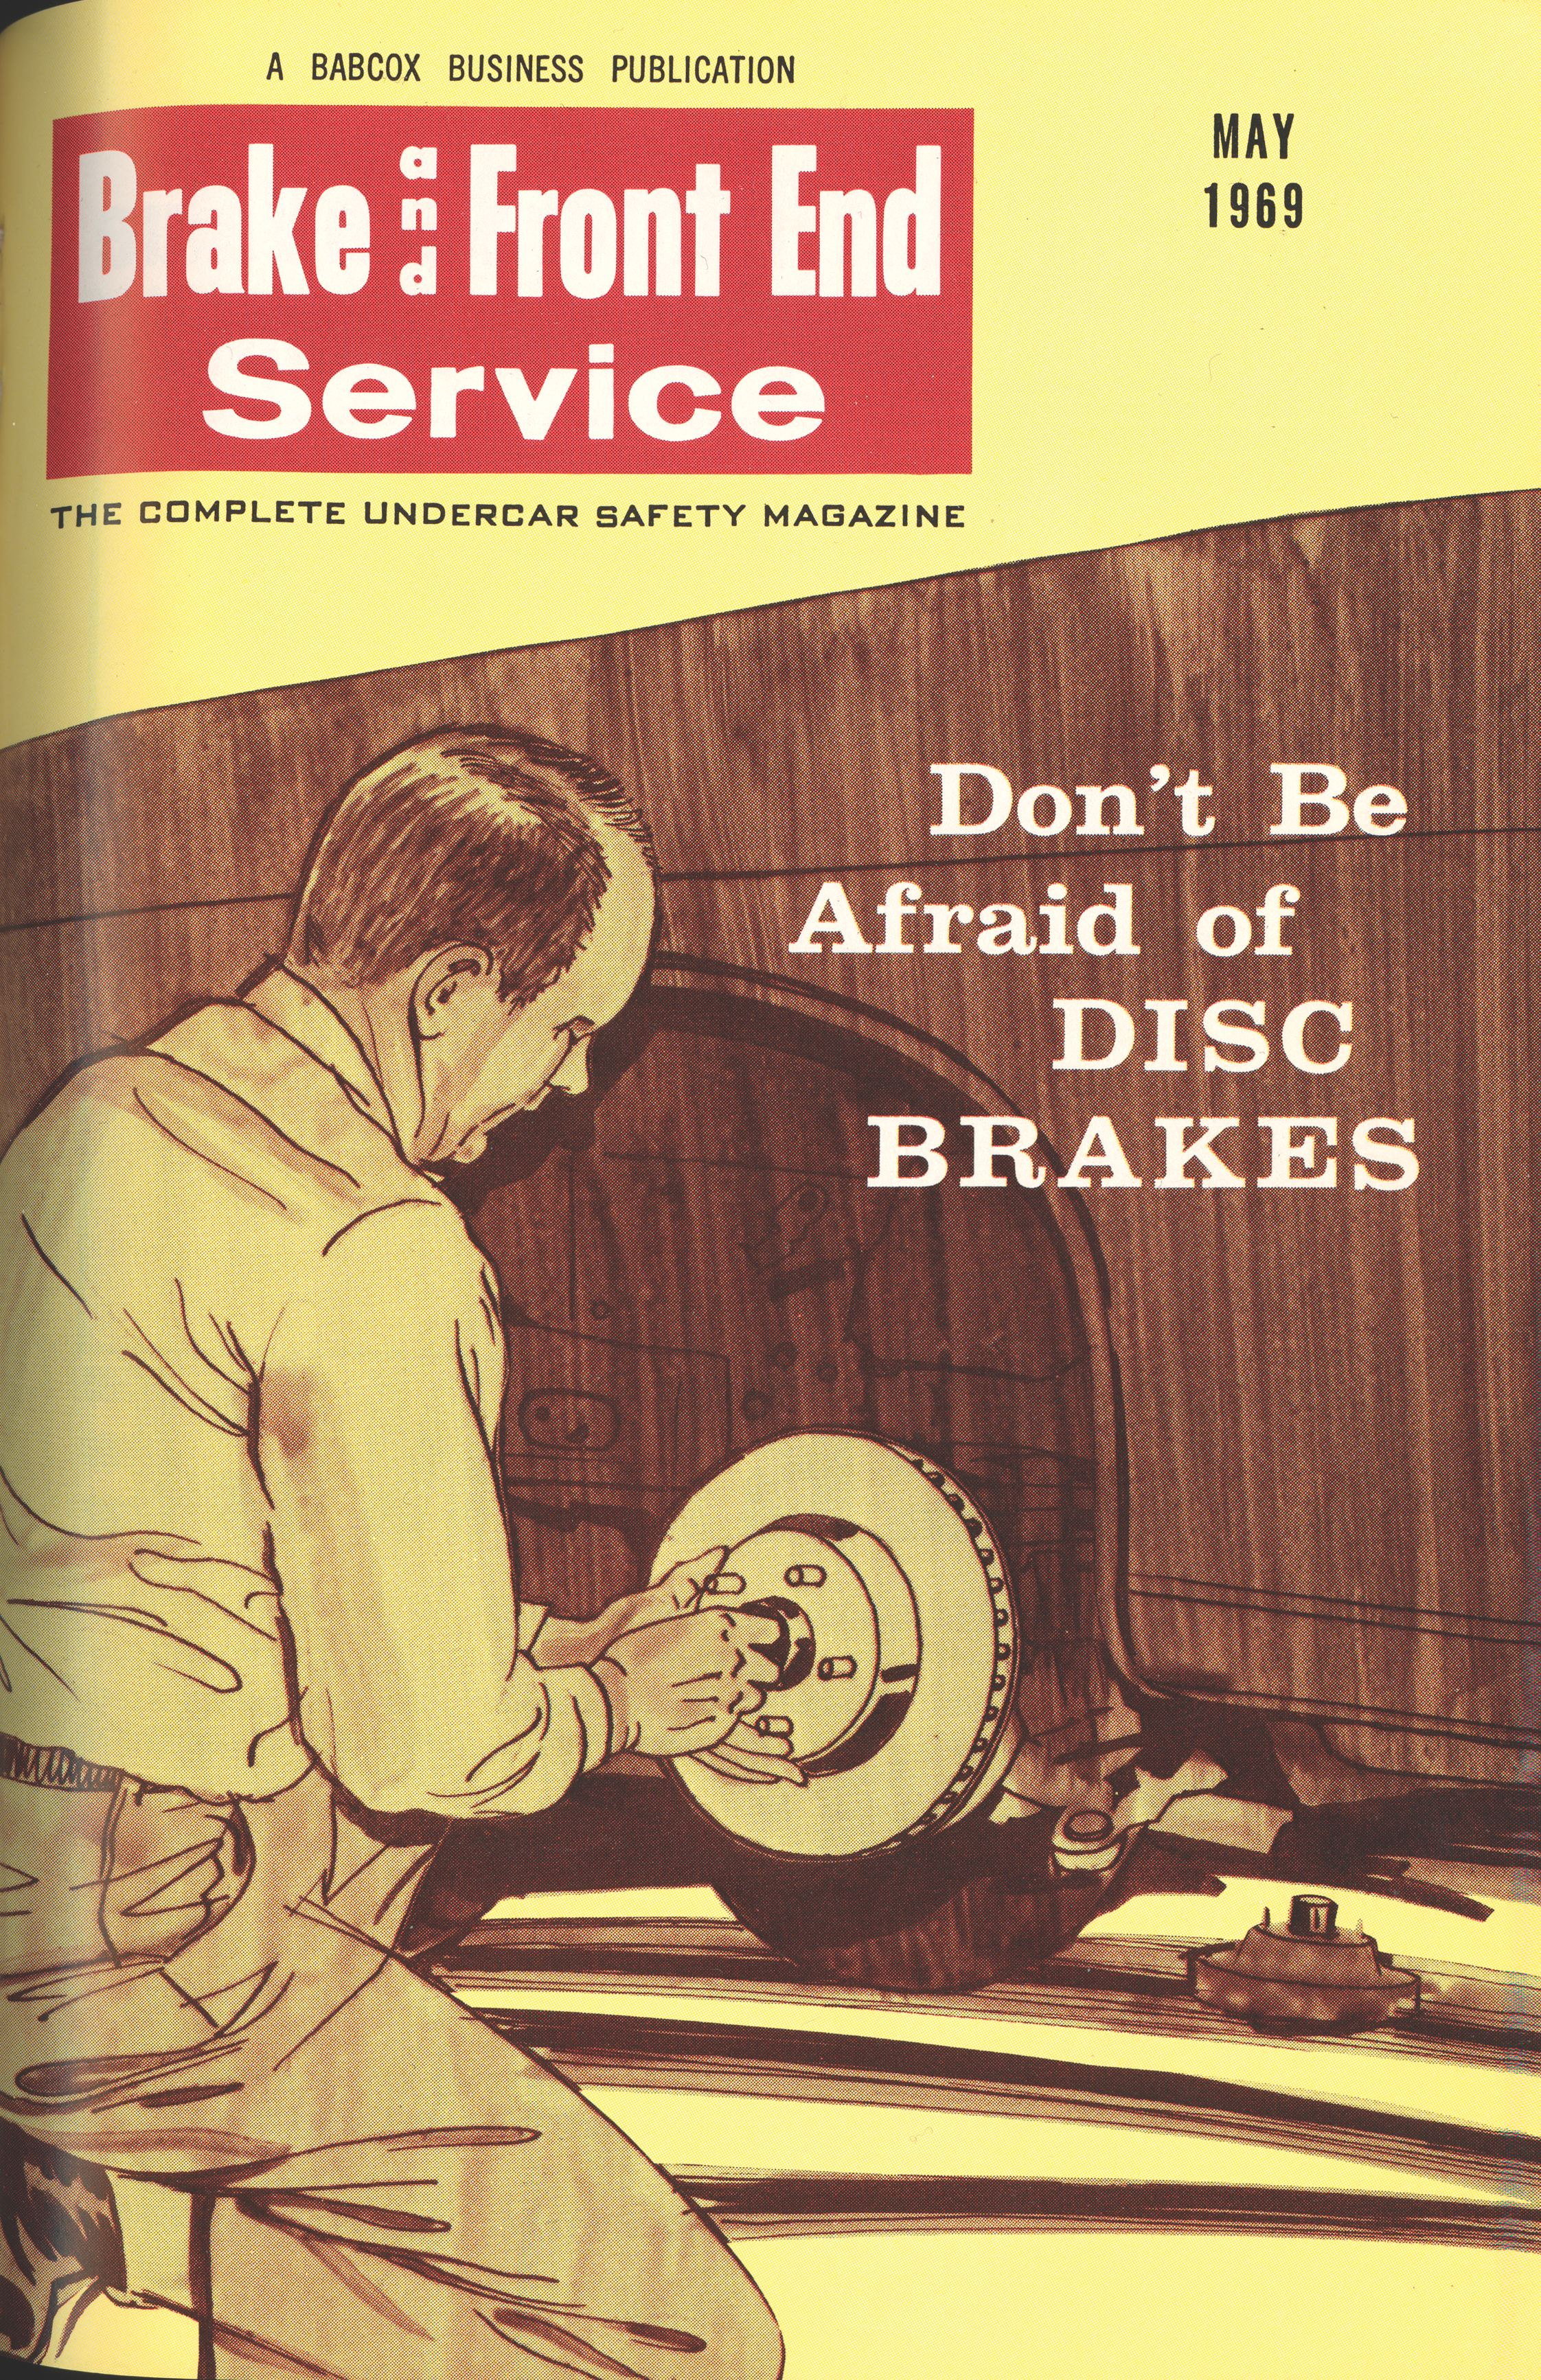 1969 Disc Brakes Fears